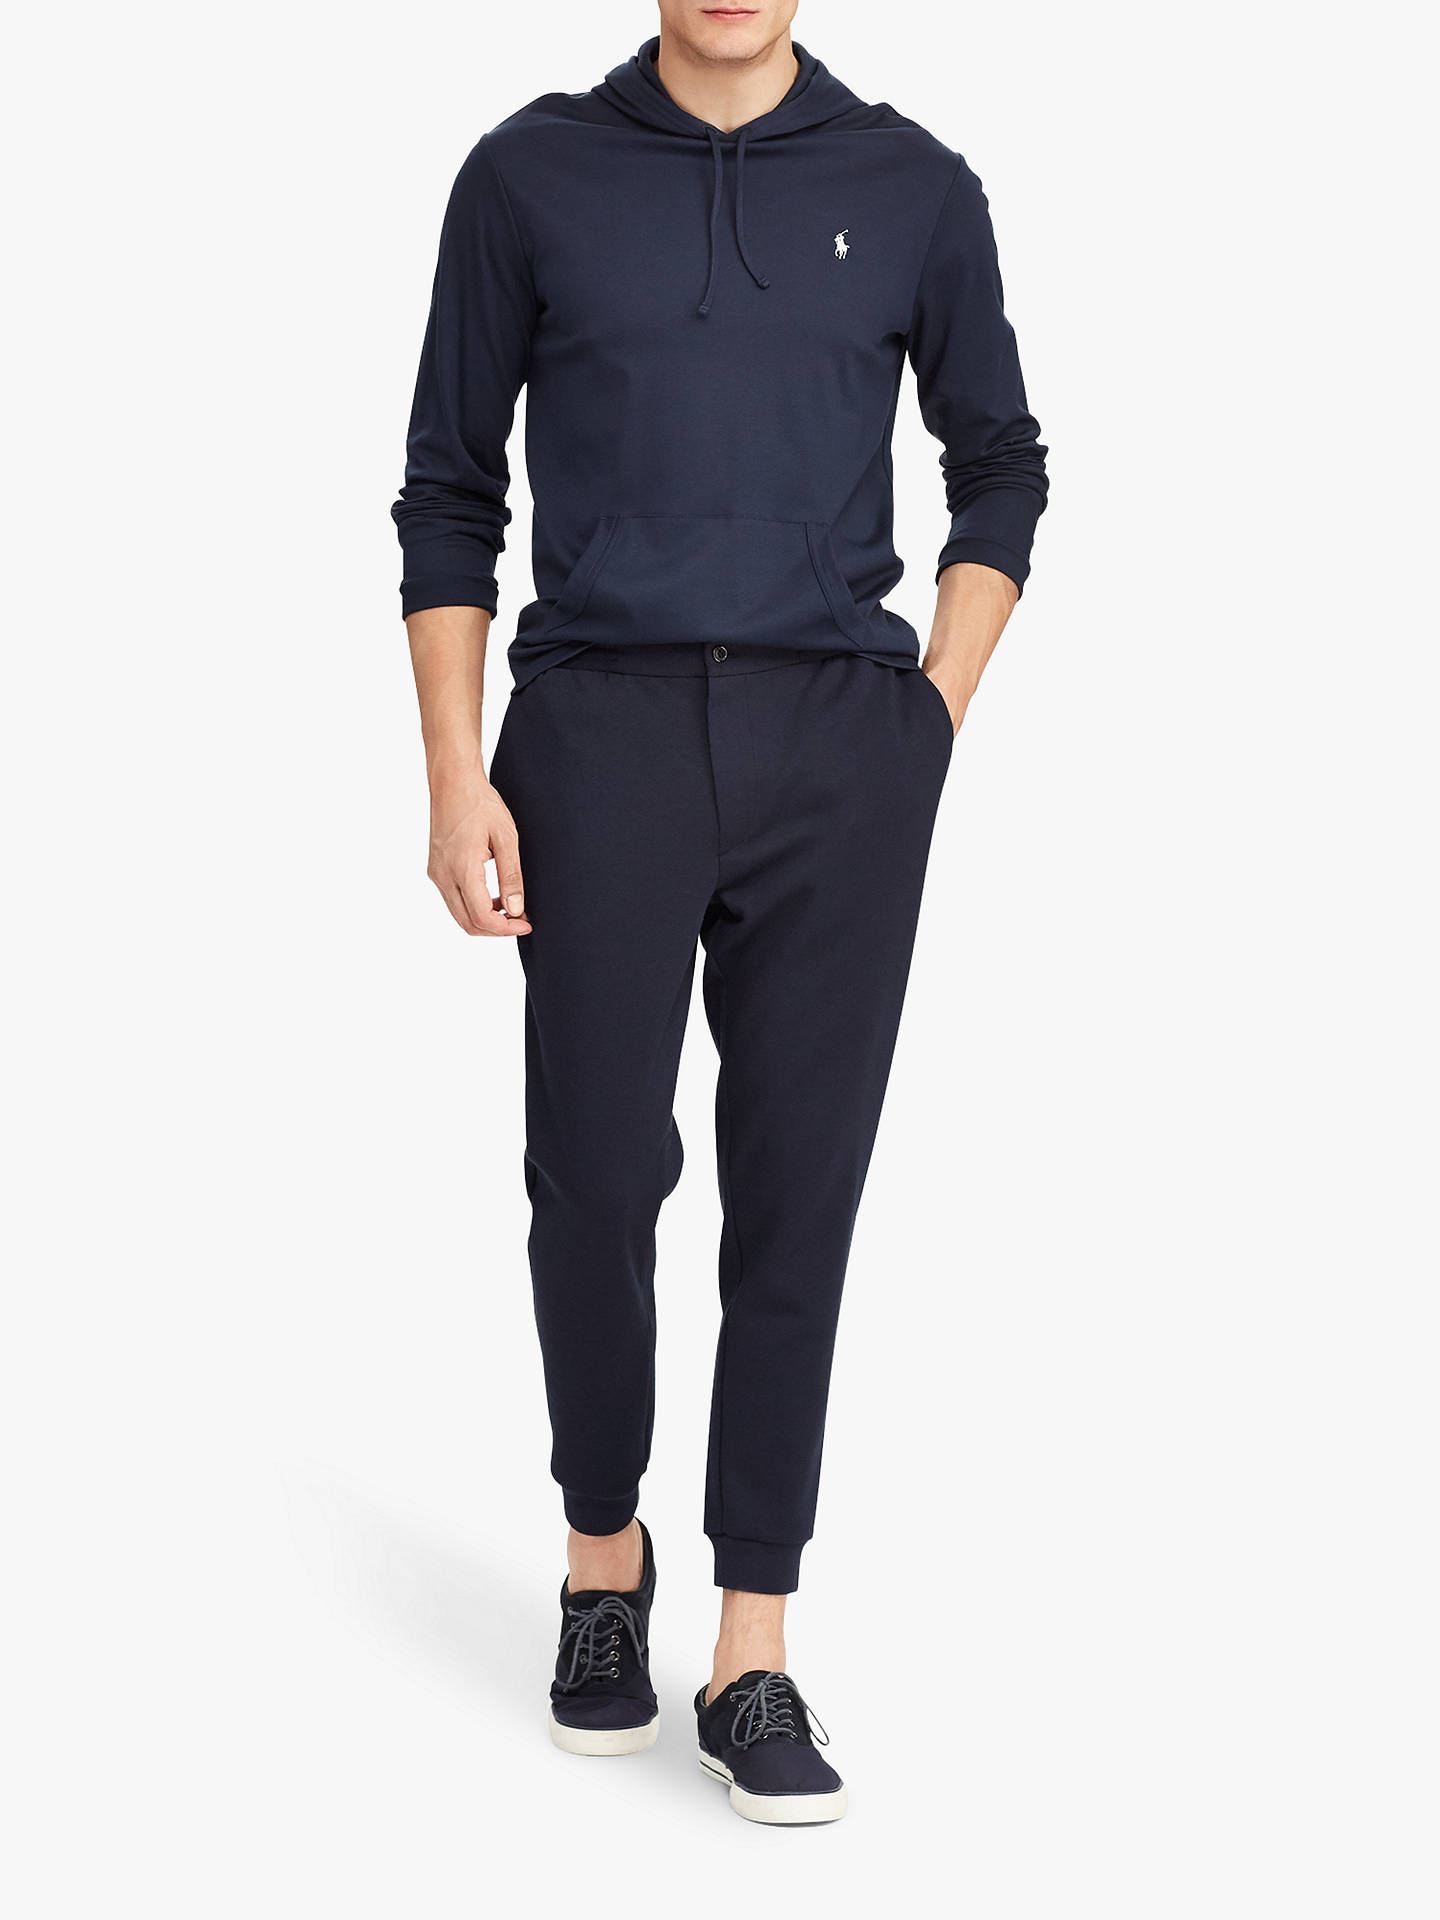 Lauren Double Tech Navy Ralph Knit Polo JoggersAviator wPXZuiOkT